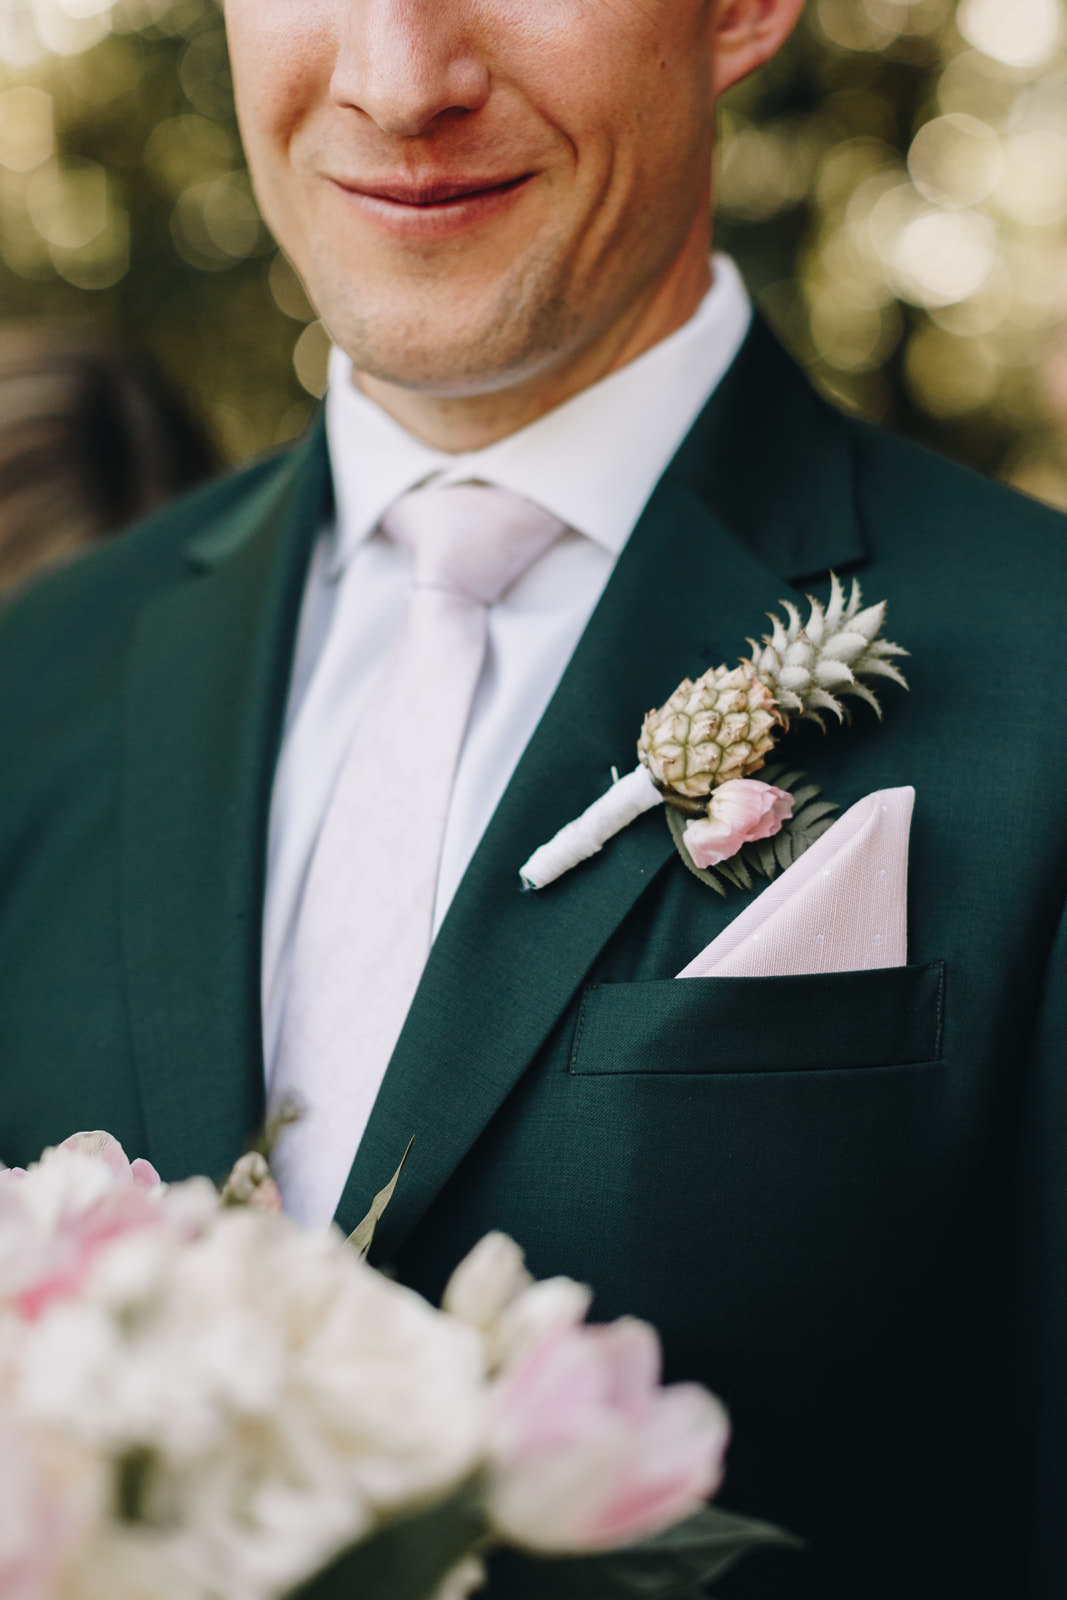 Groom with a blush tie and a pineapple boutonniere.